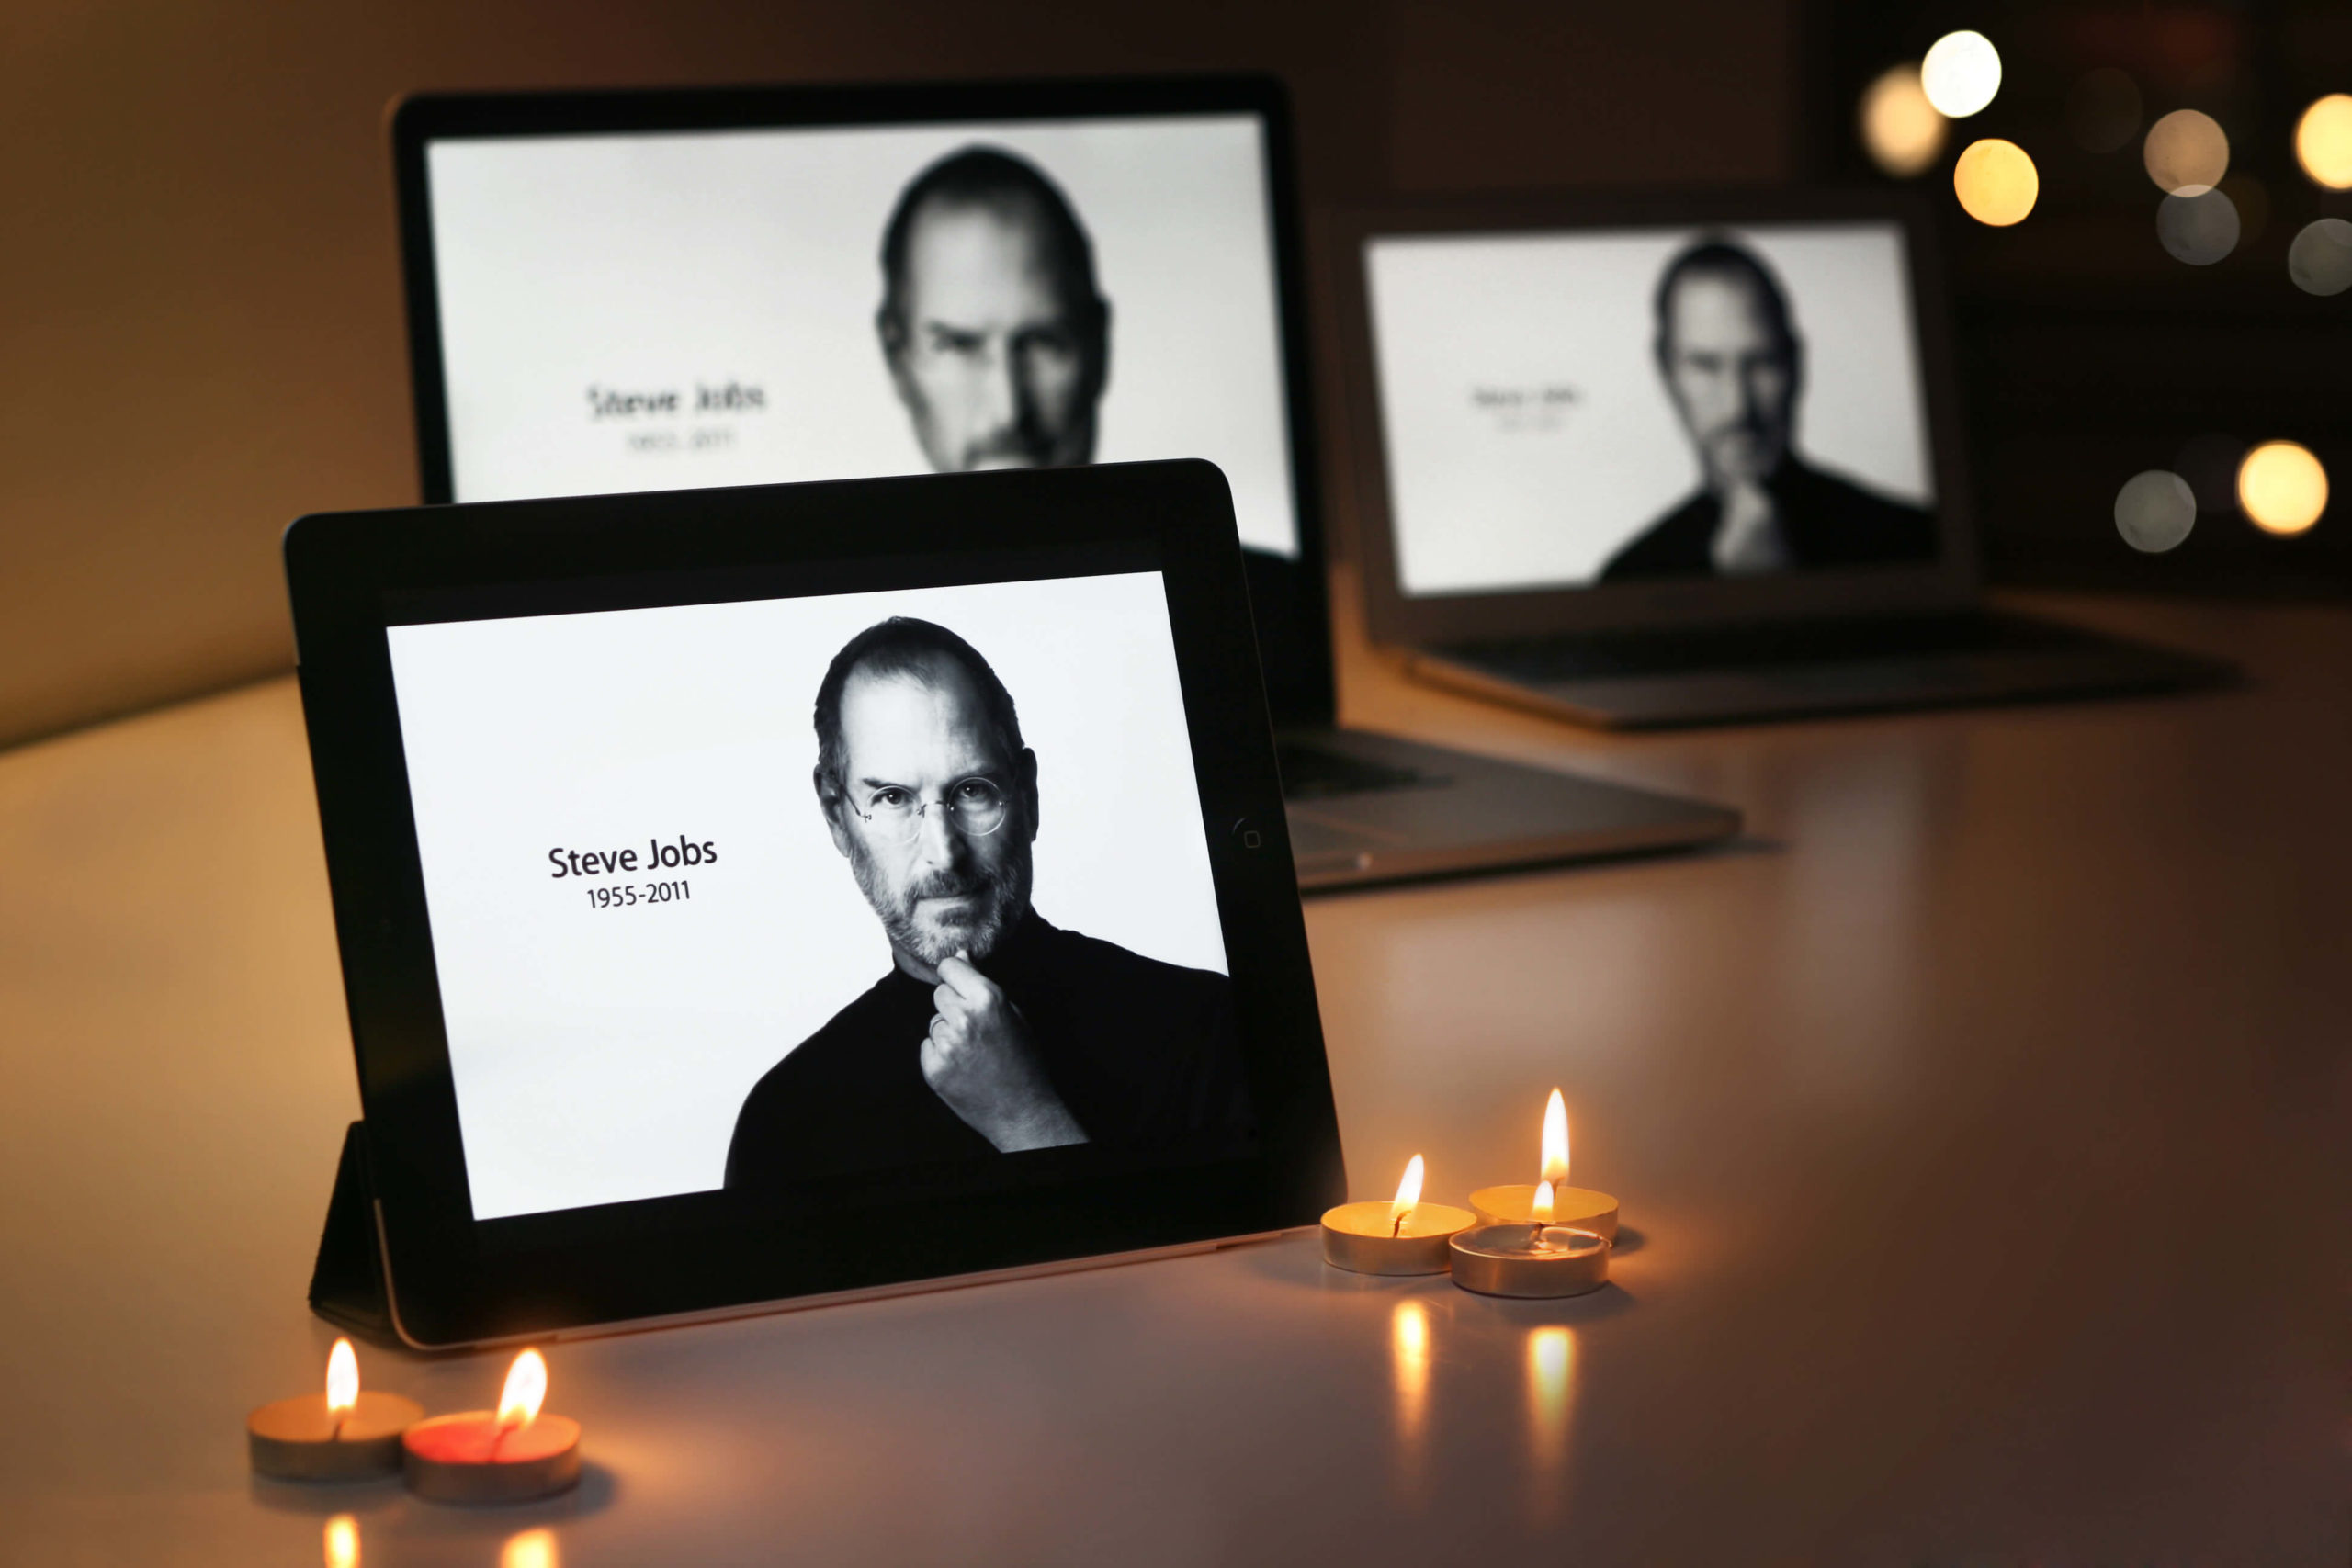 Steve Jobs similar to classic old-school Japanese managers